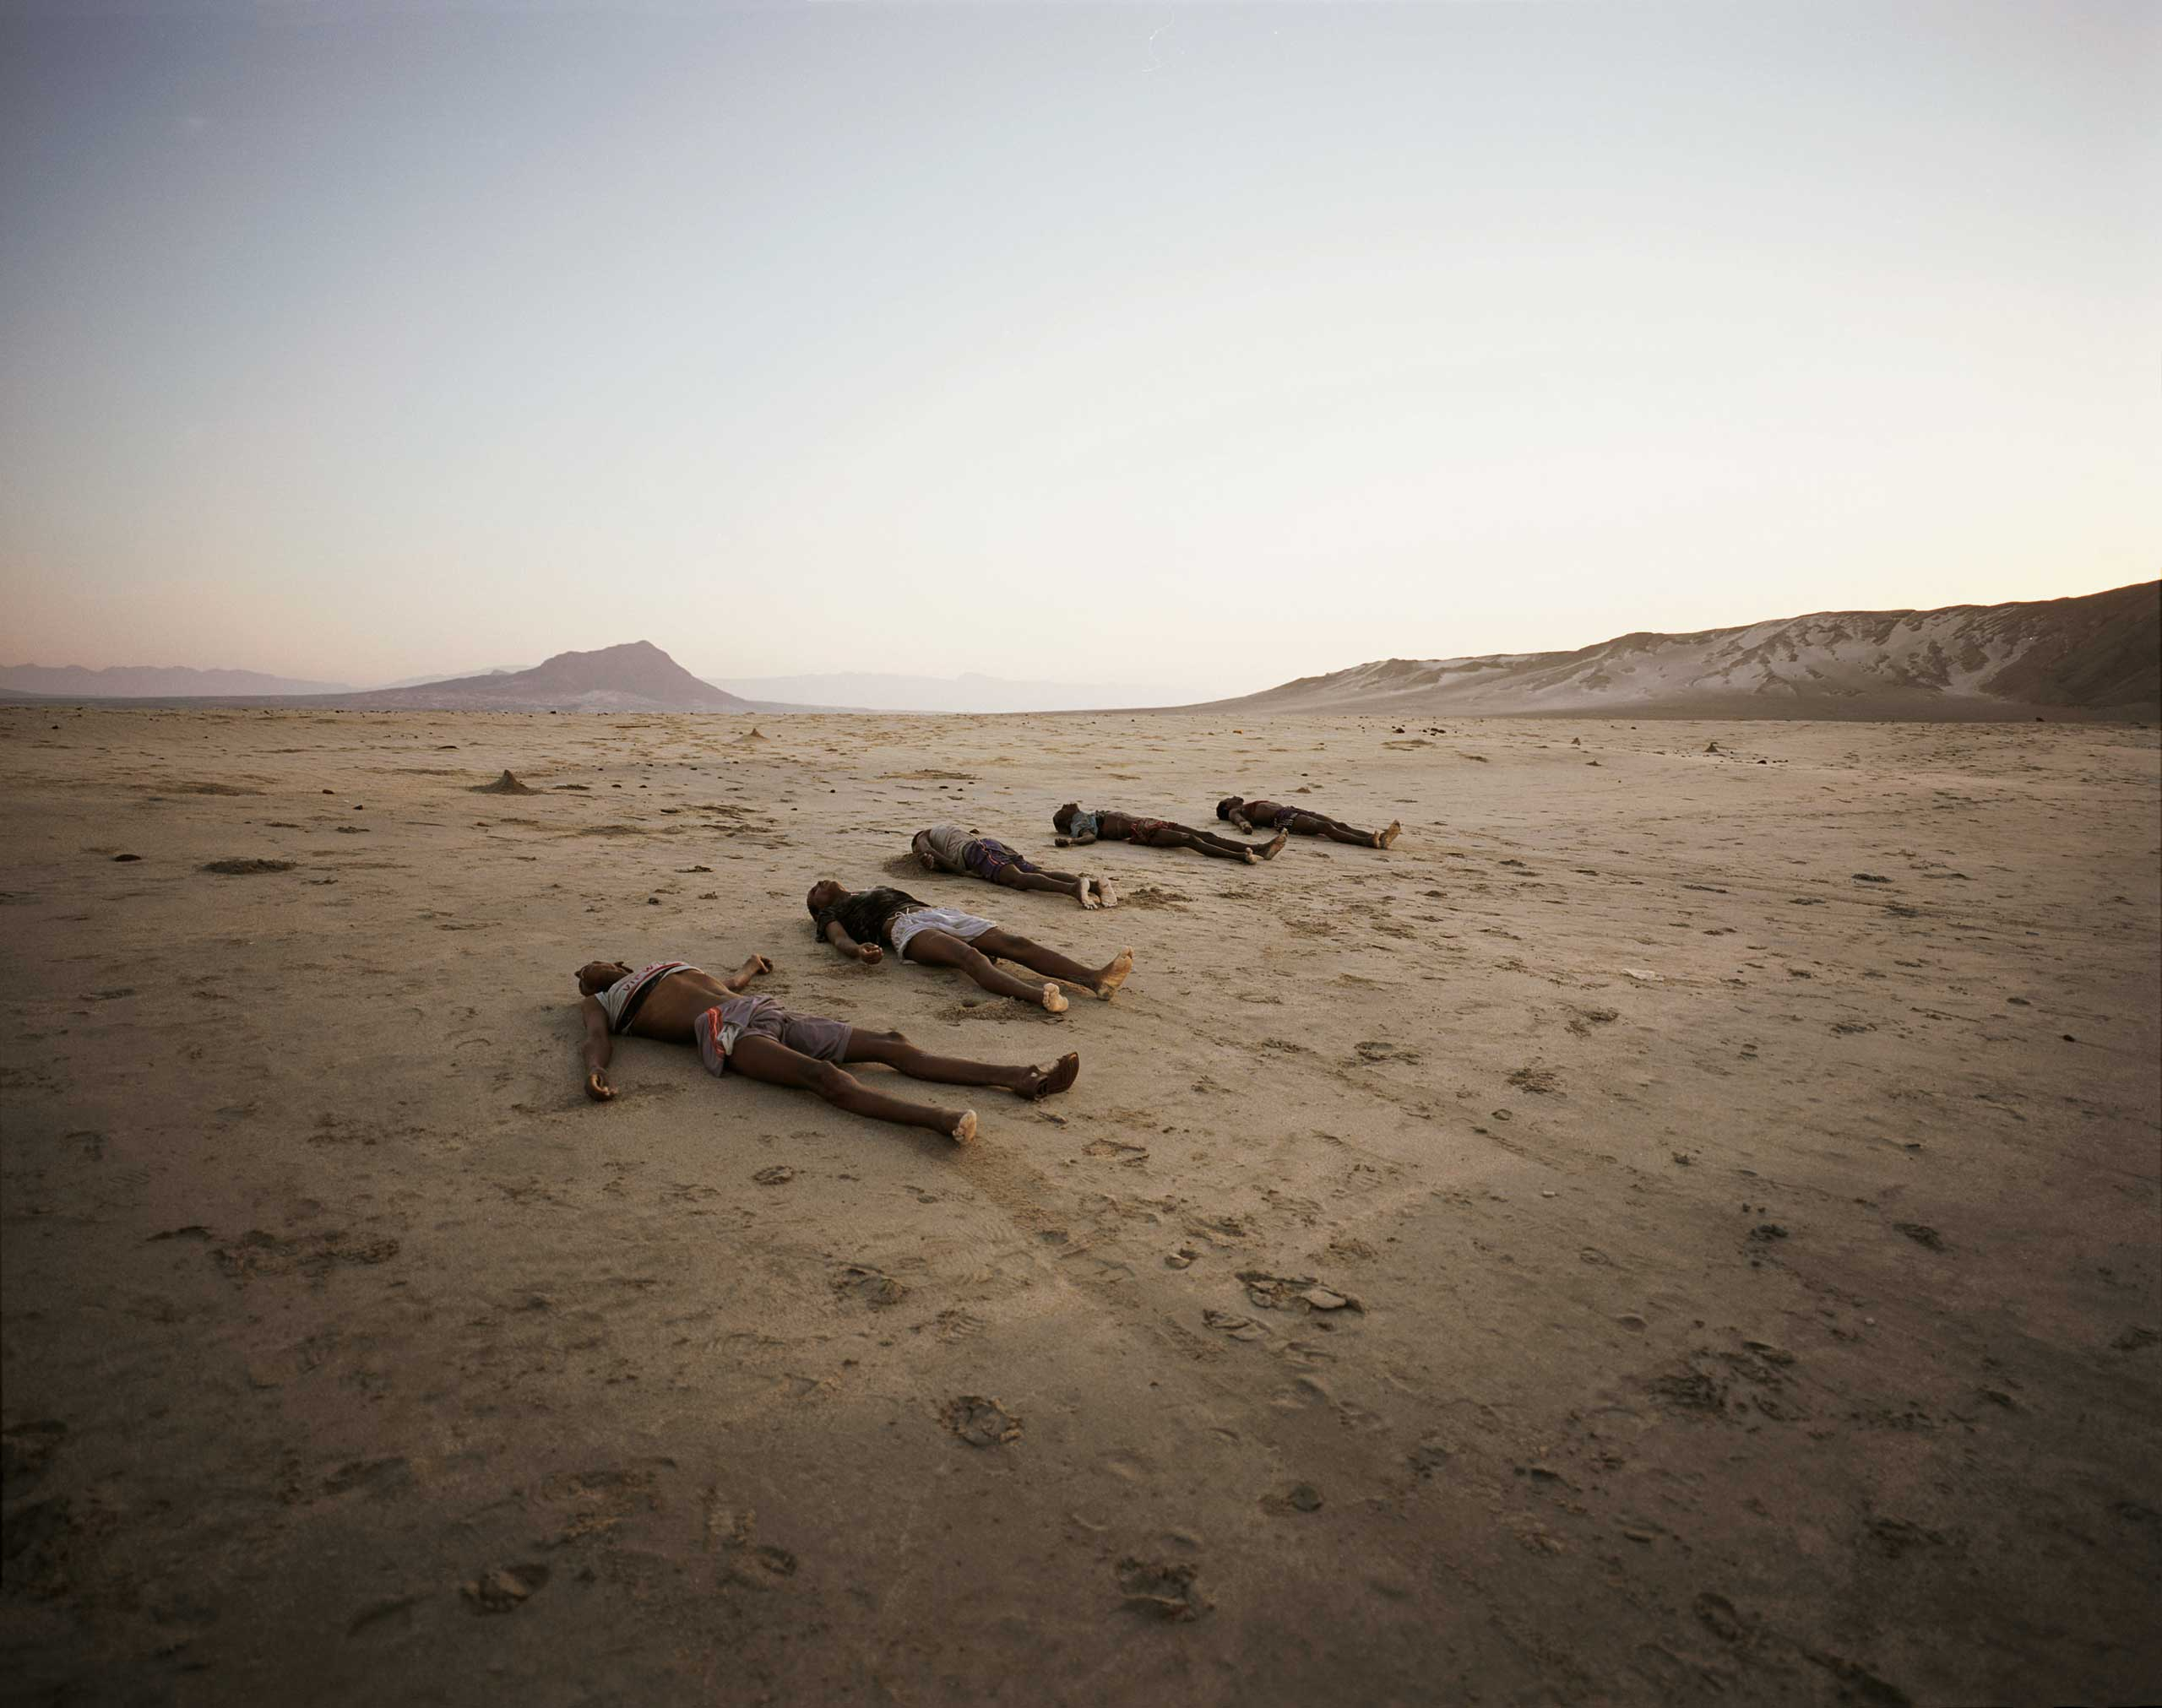 A row of corpses line Al-Baida Beach in Bir Ali, Yemen, May 2, 2007. A total of 34 bodies were found. Just one week after an almost identical tragedy saw 30 dead on a nearby beach, Somali smugglers continued to drop their human cargo out at sea rather than coming close to shore and risking detection.